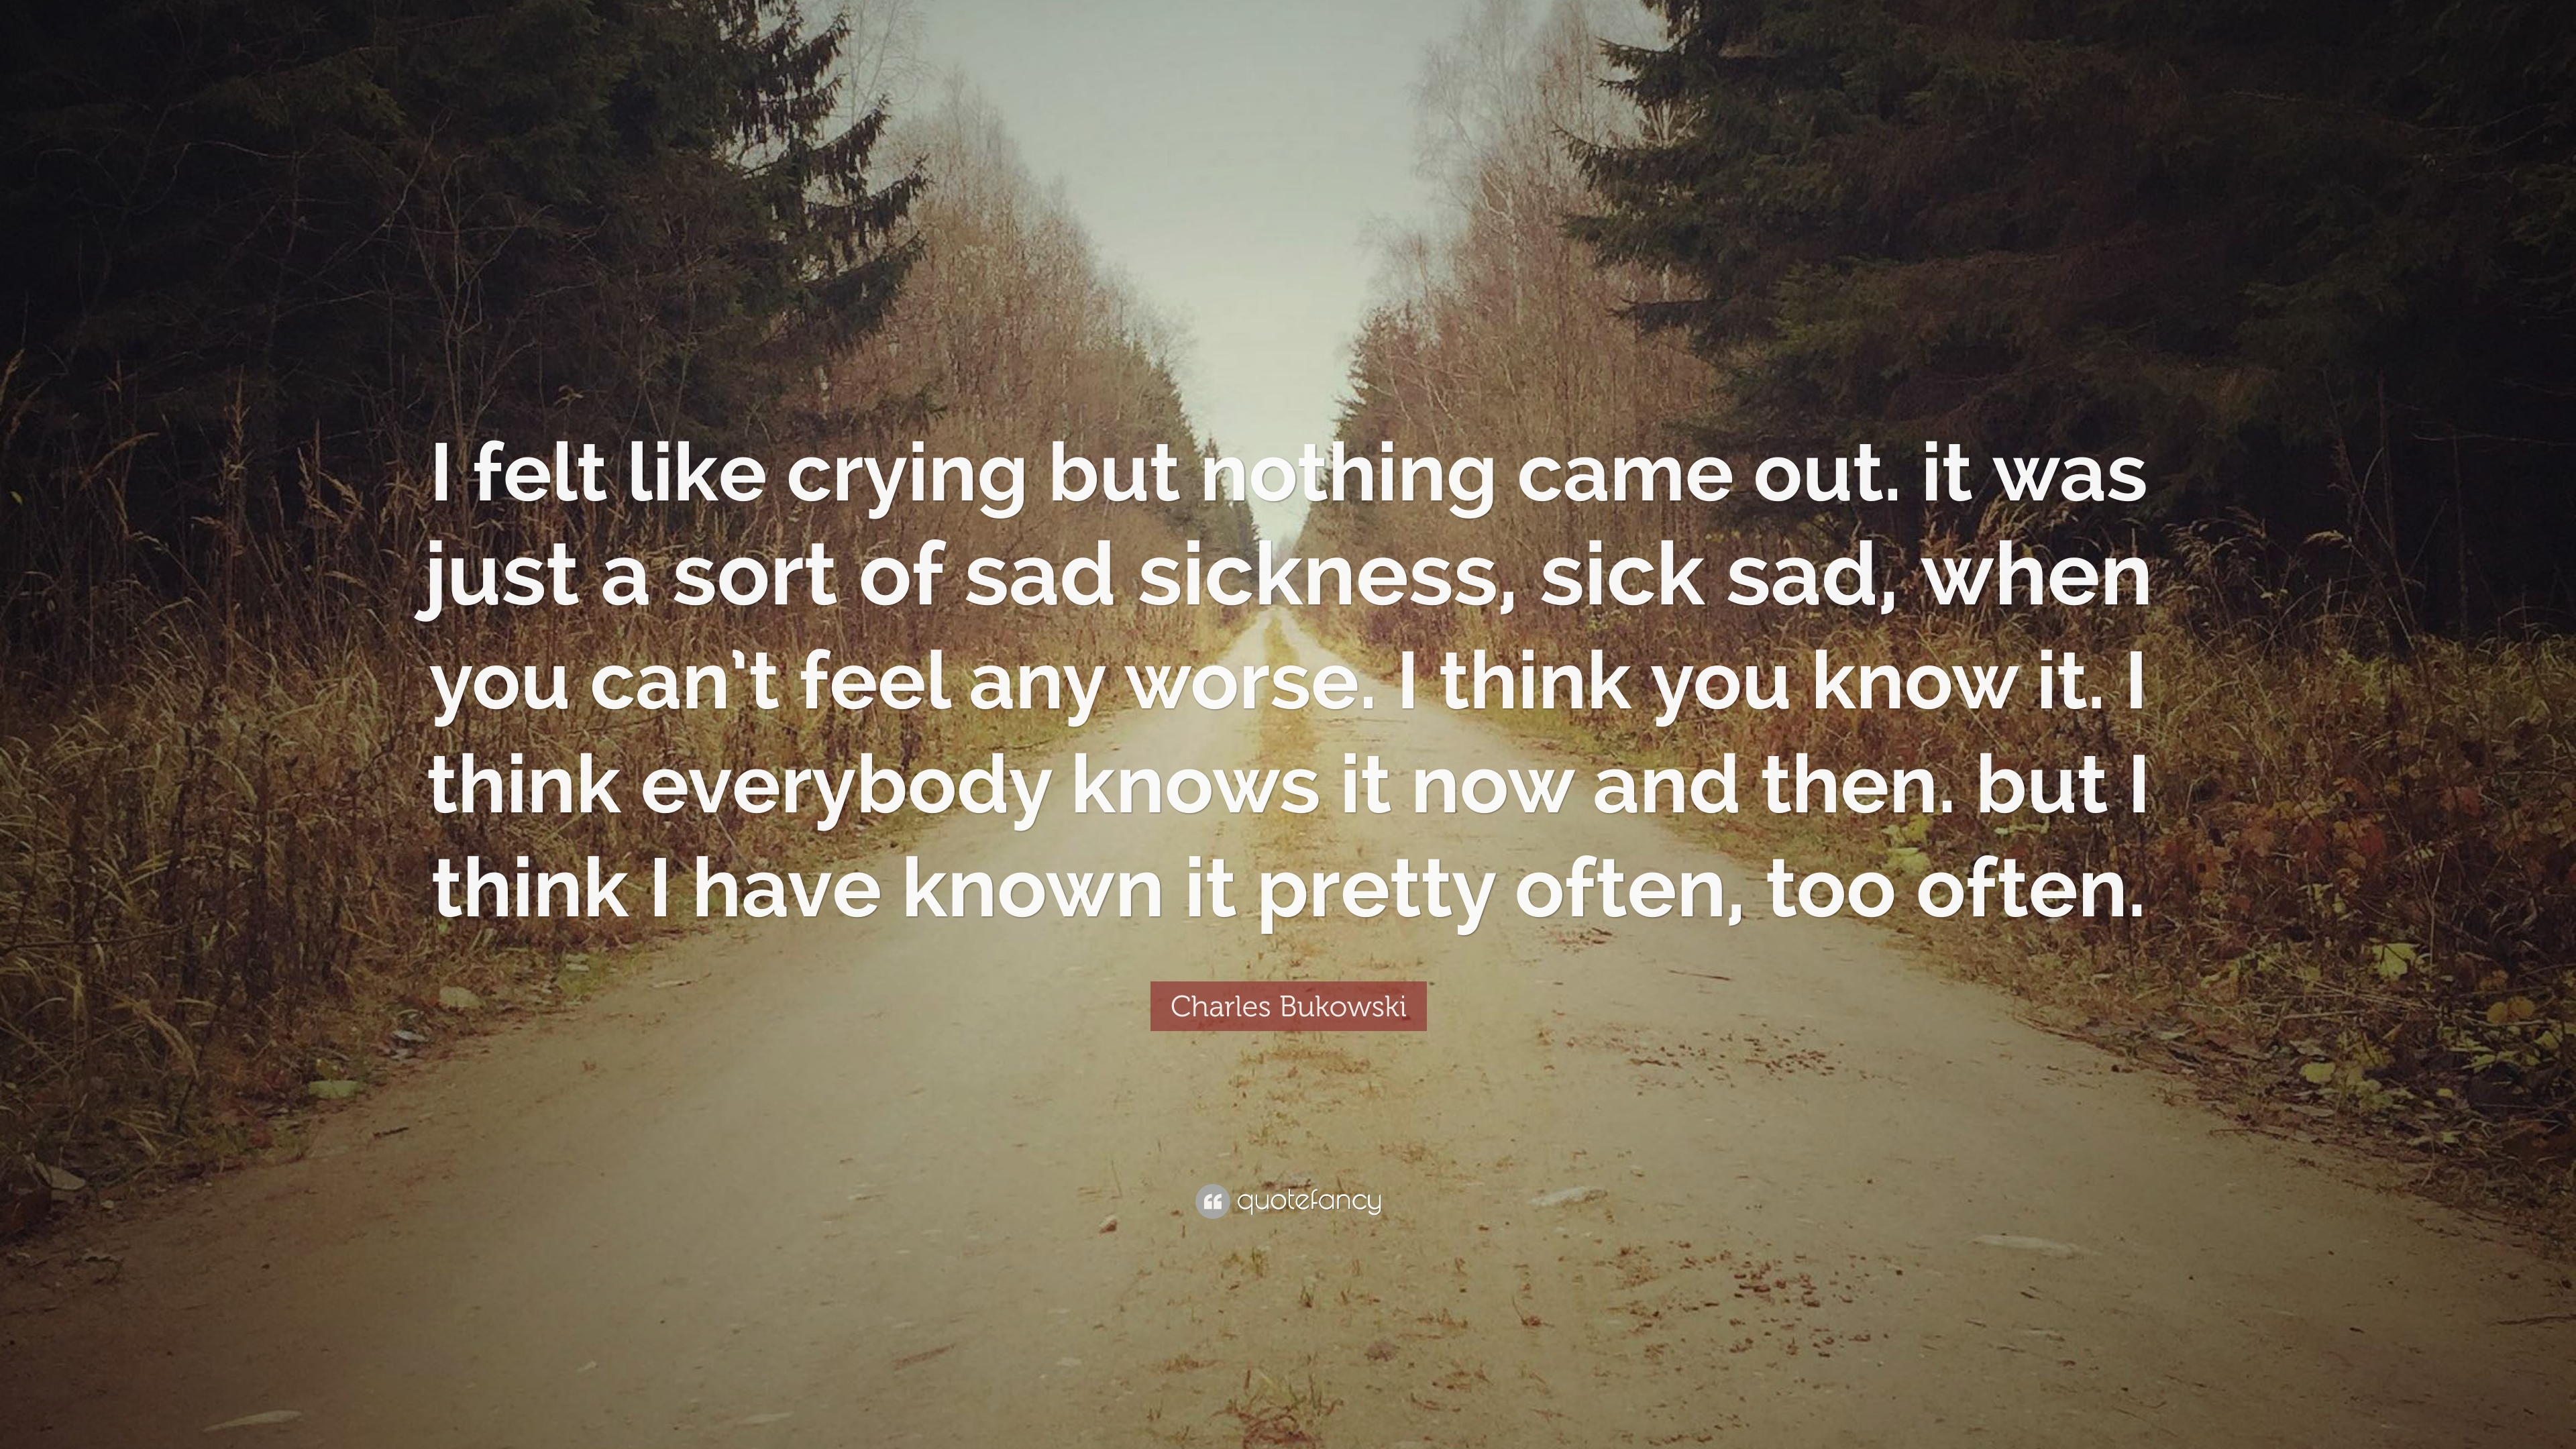 Charles Bukowski Quote: U201cI Felt Like Crying But Nothing Came Out. It Was